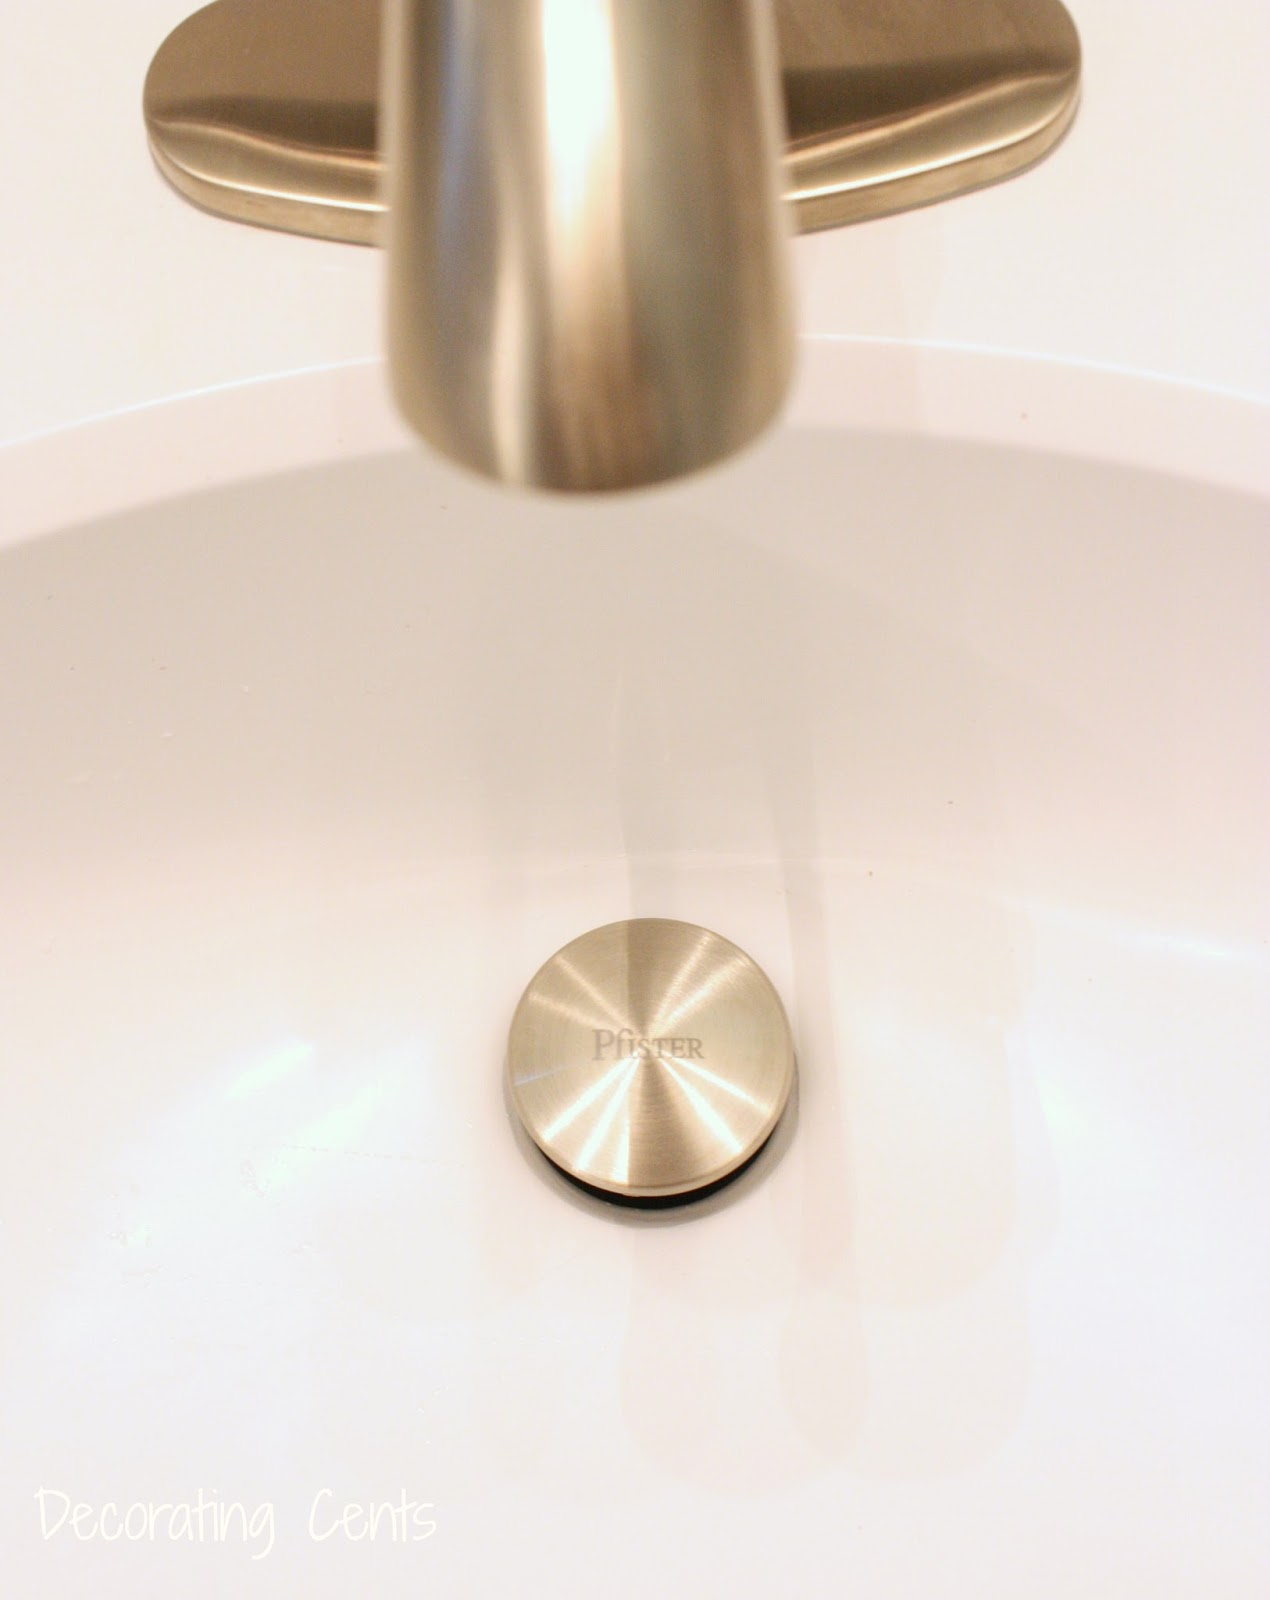 Decorating Cents: Bathroom Faucets From Pfister